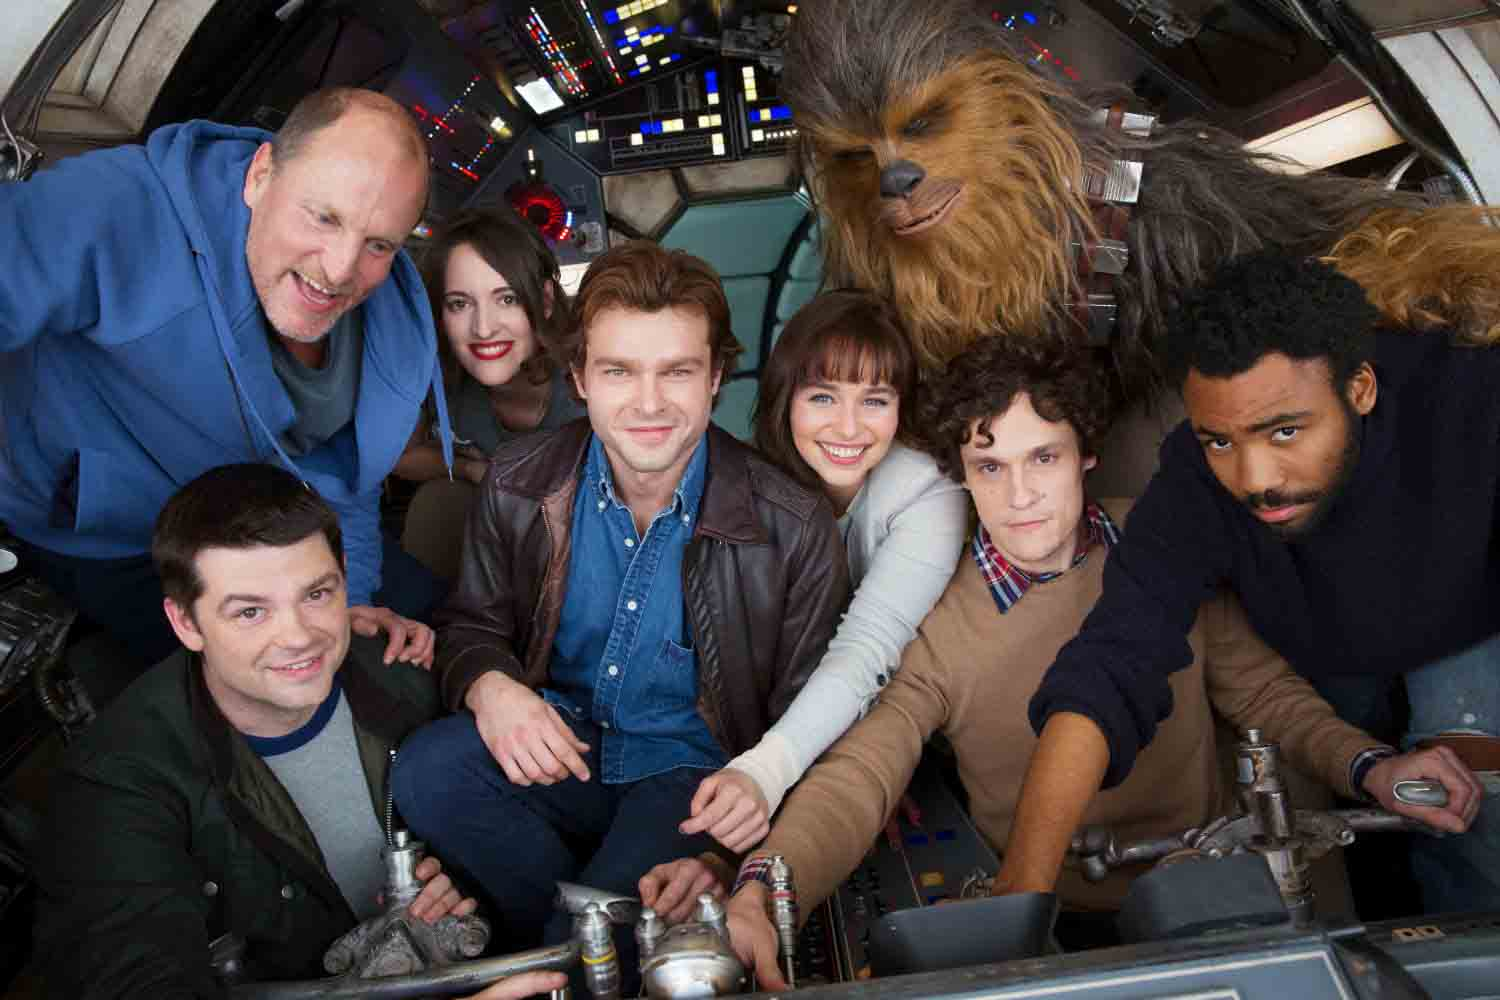 Solo A Star Wars Story: More Light Shed on the Firing of Phil Lord and Chris Miller